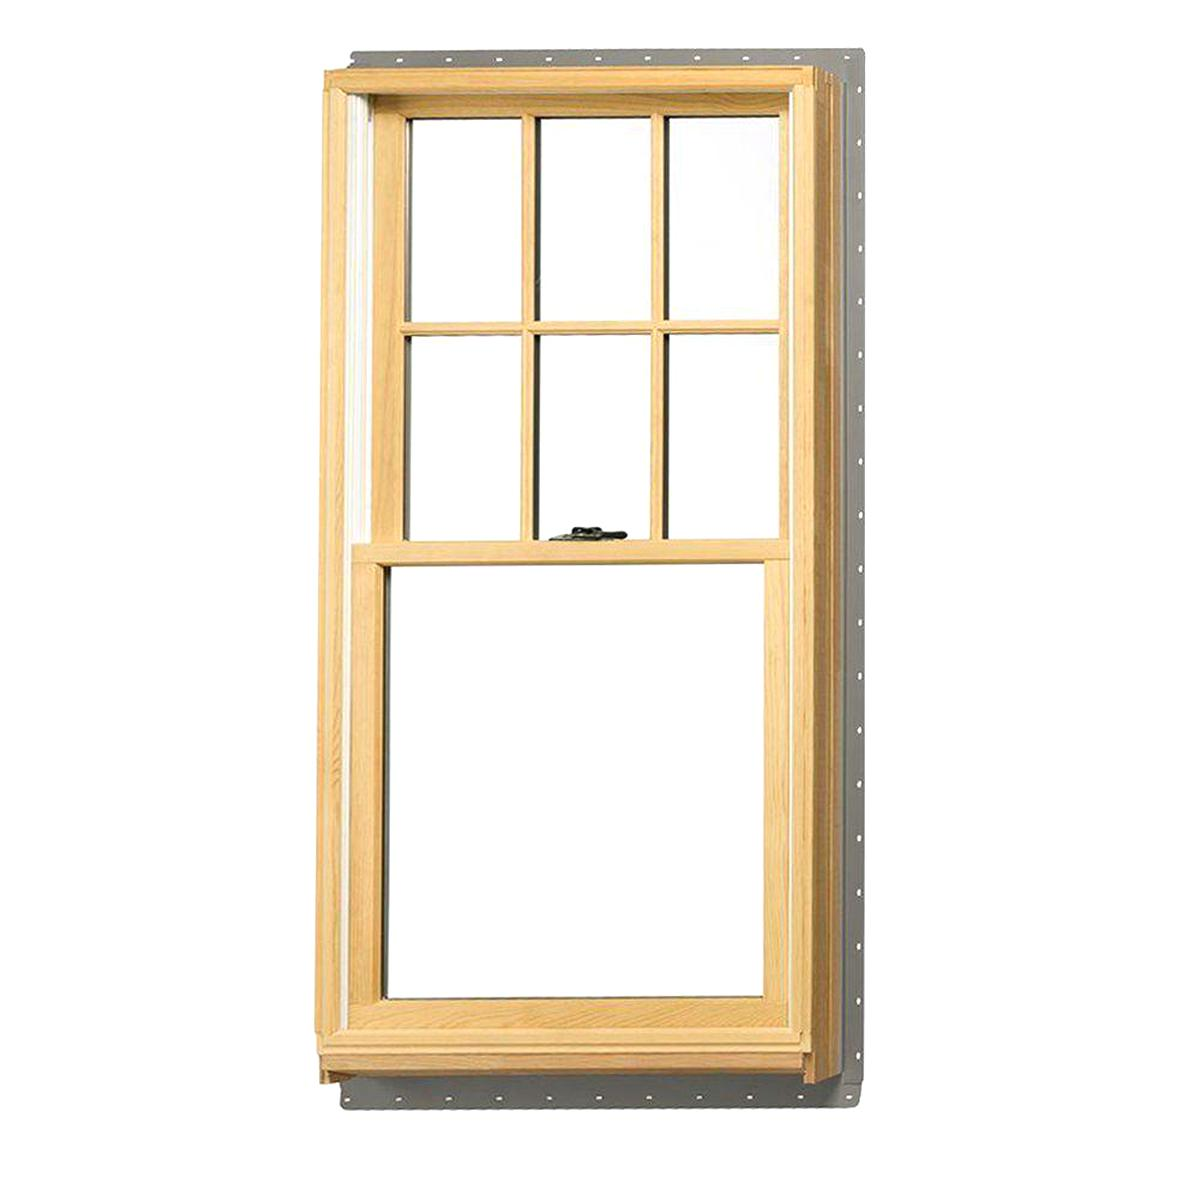 French Patio Doors For Sale Only 2 Left At 70